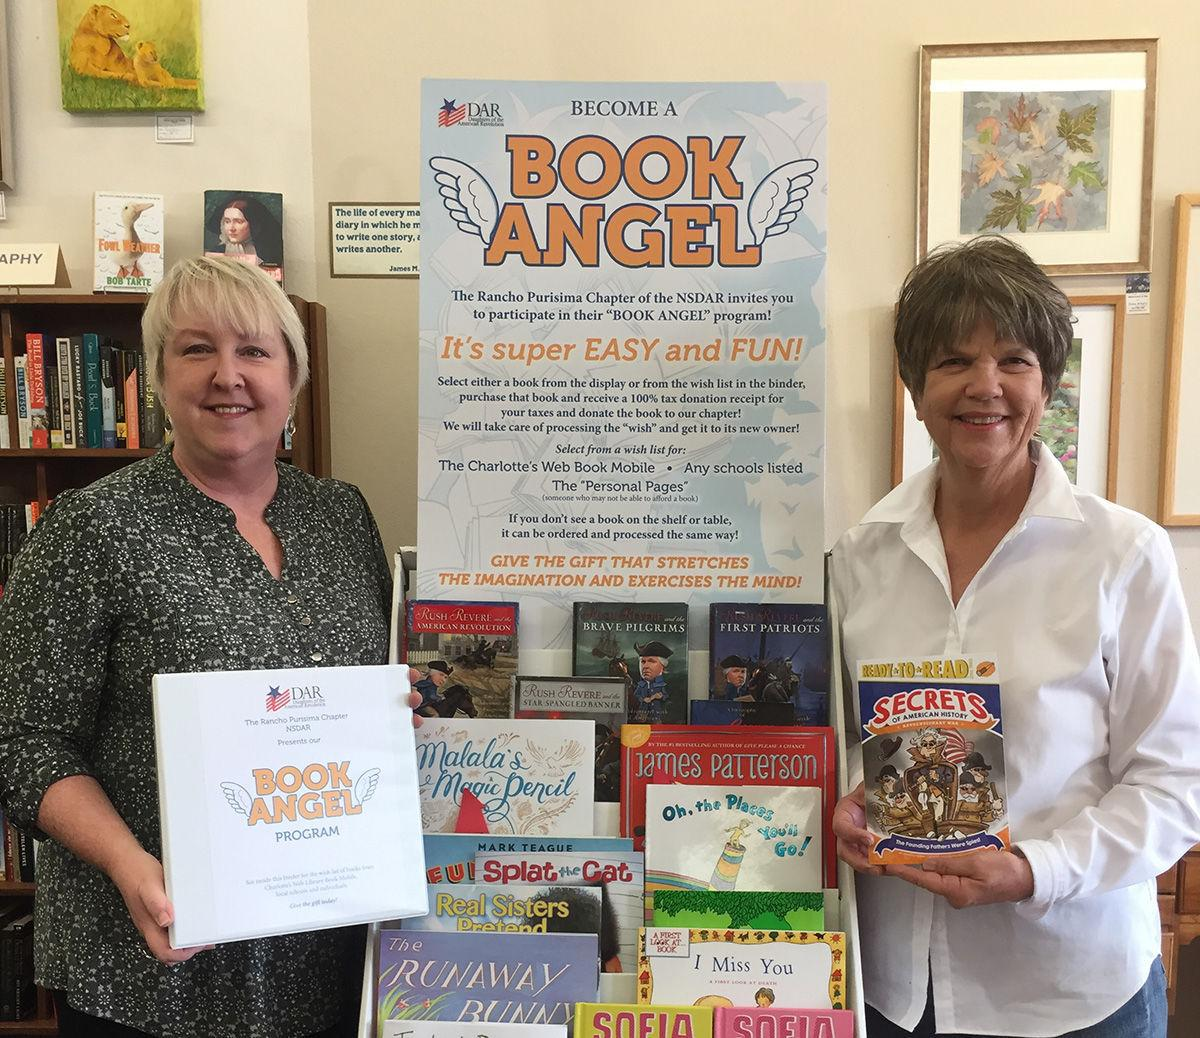 Book Angel program